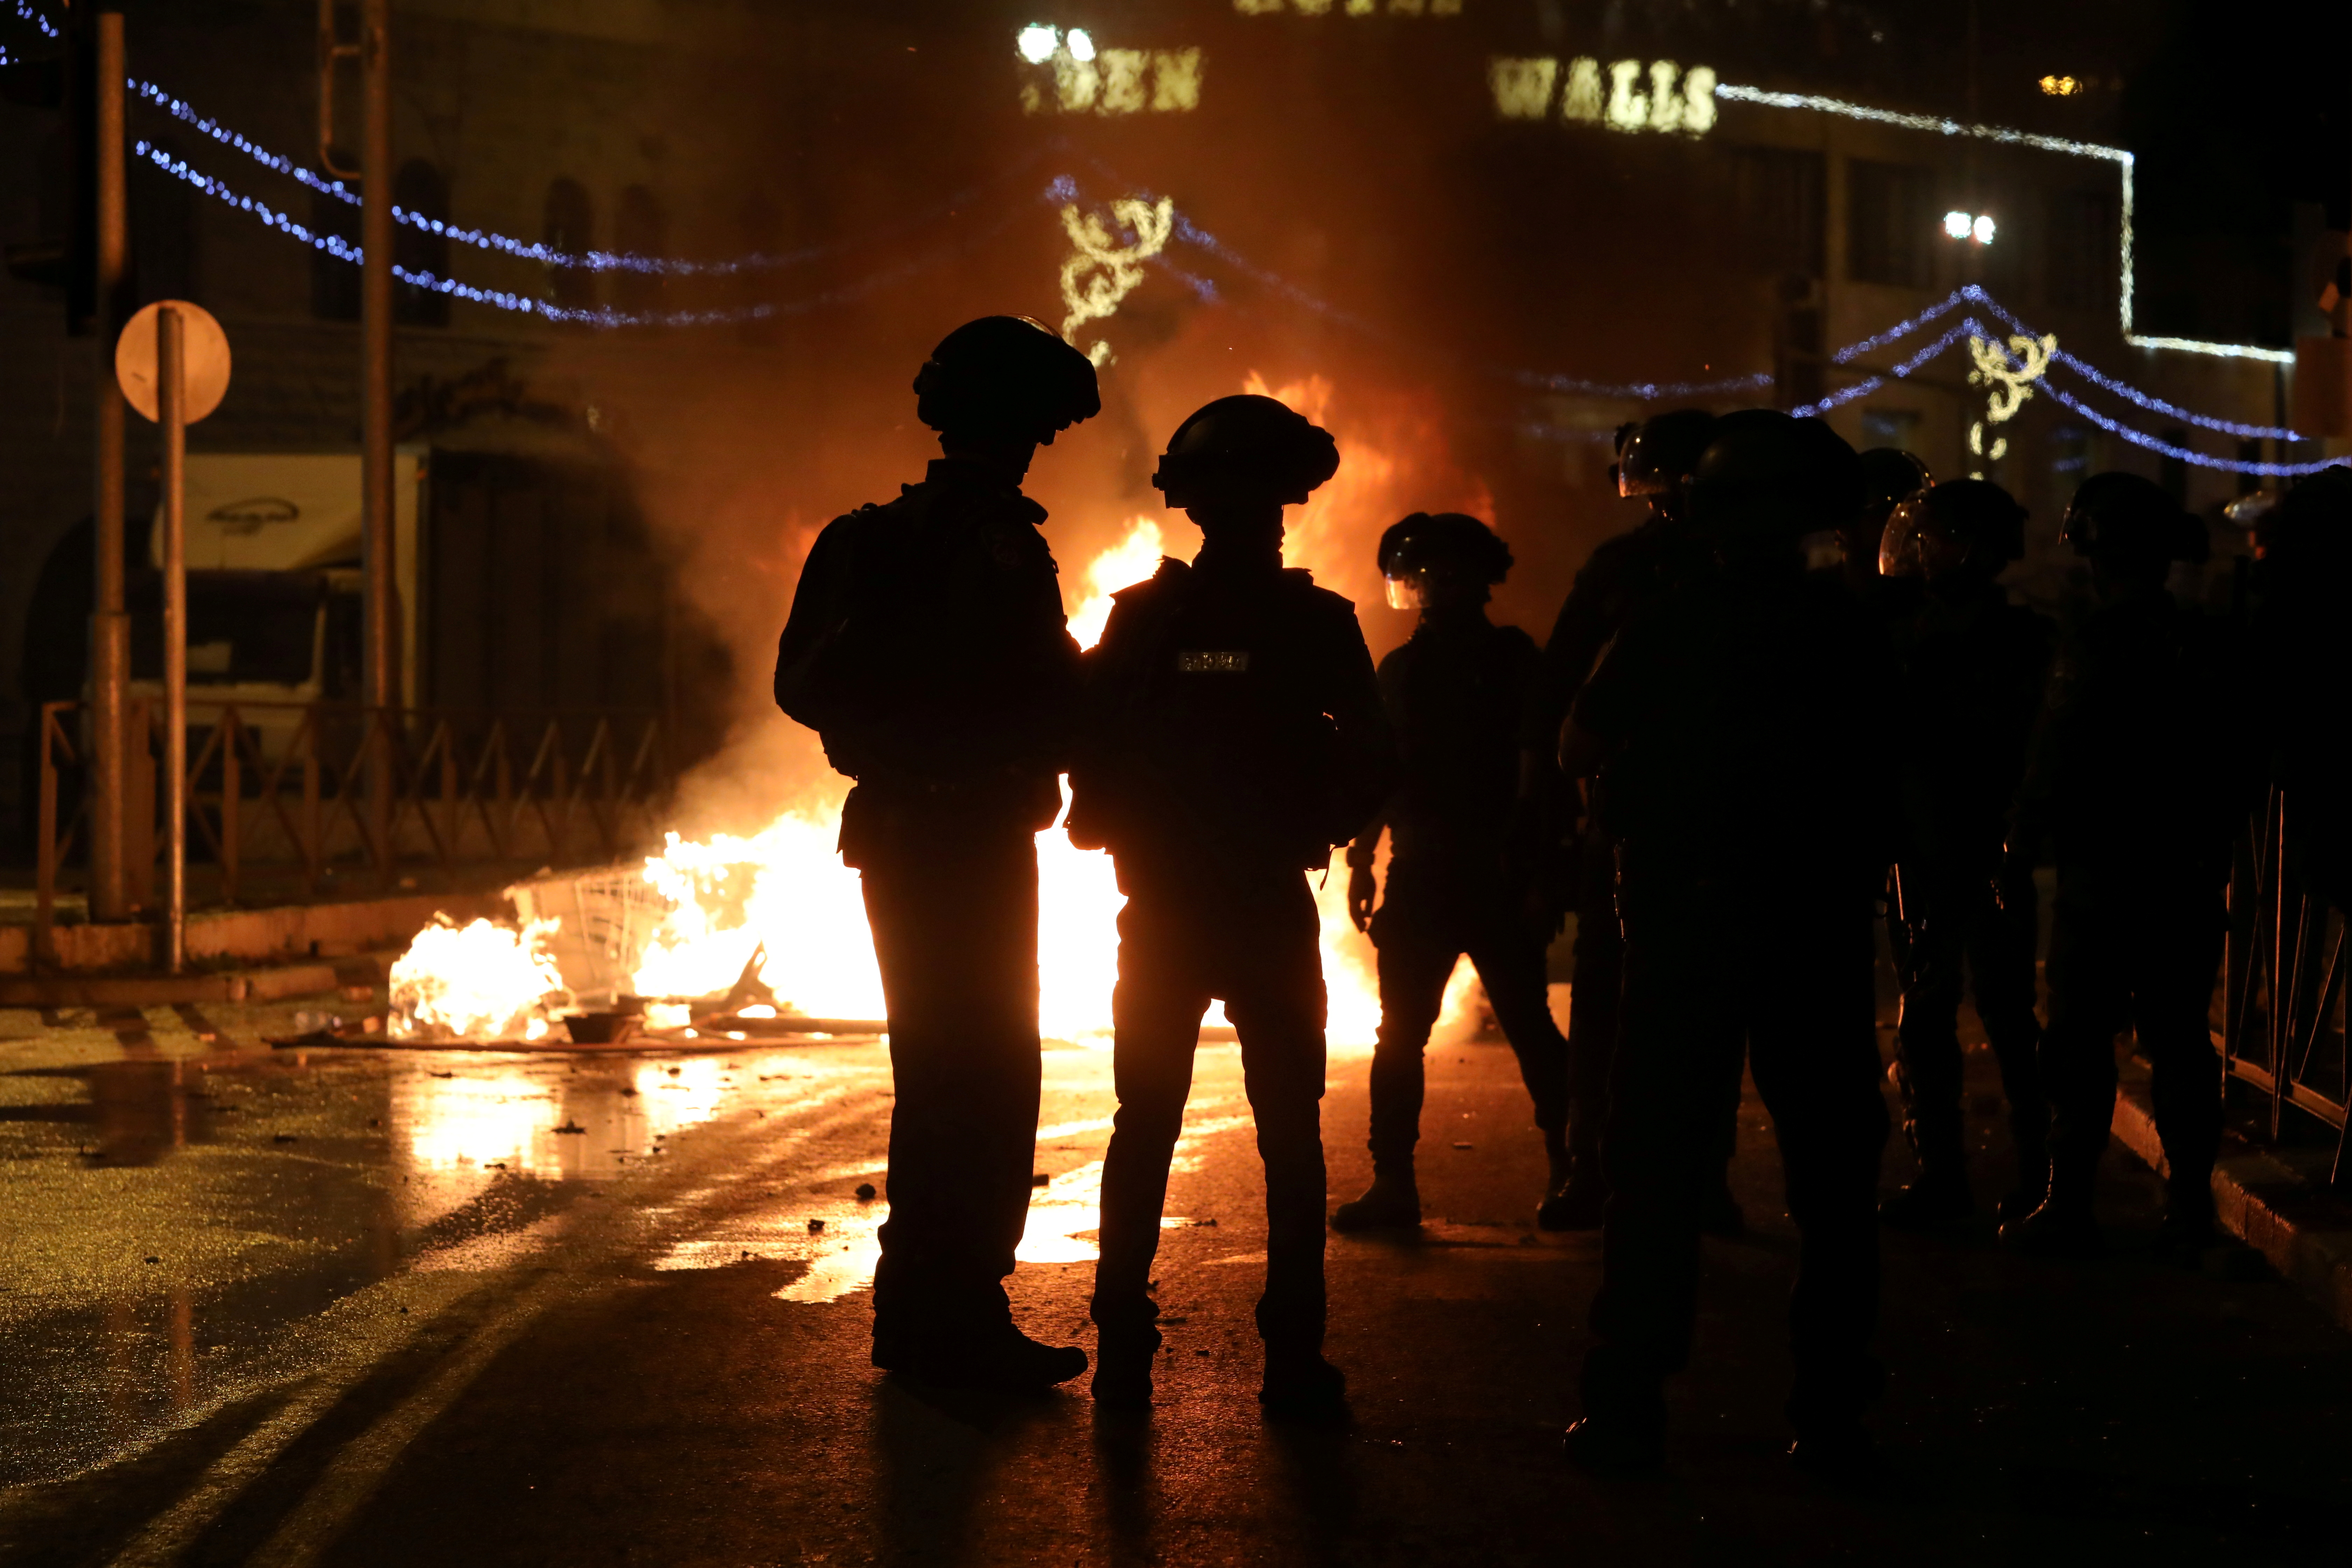 Israeli police officers stand next to a burning barricade during clashes with Palestinians, as the Muslim holy fasting month of Ramadan continues, in Jerusalem, April 22, 2021. REUTERS/Ammar Awad